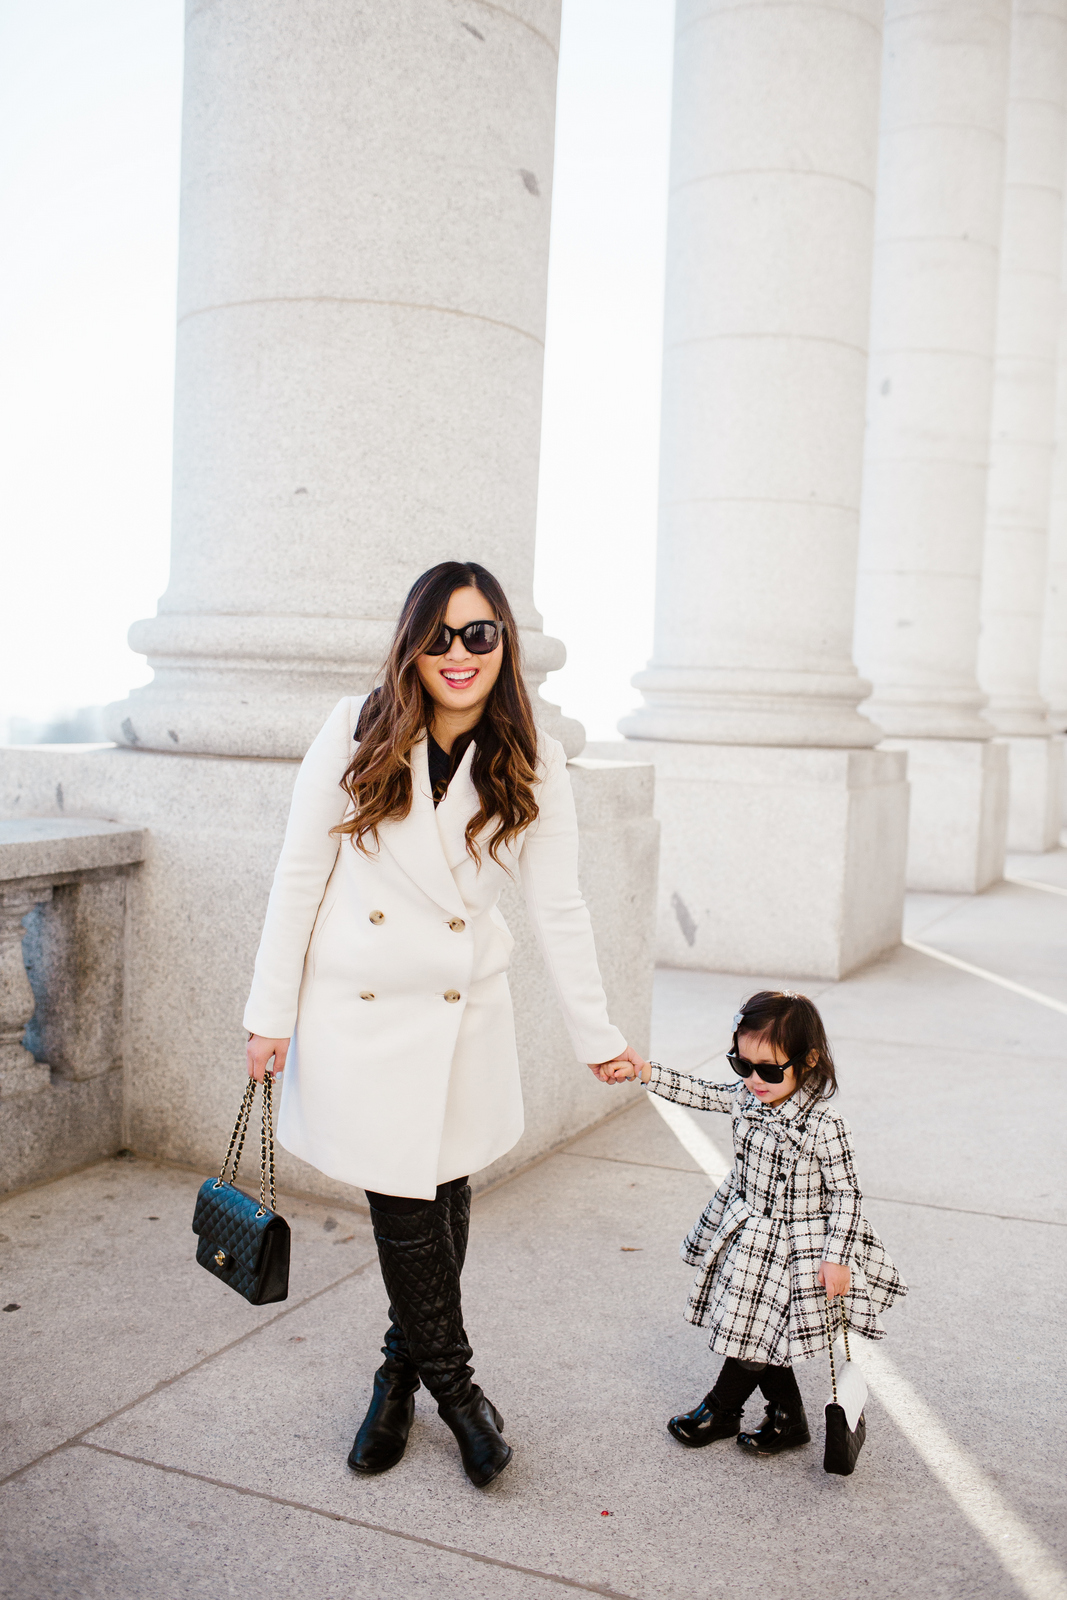 Mommy and Me Outfits by Sandy A La Mode: Classic Black and White Fashion